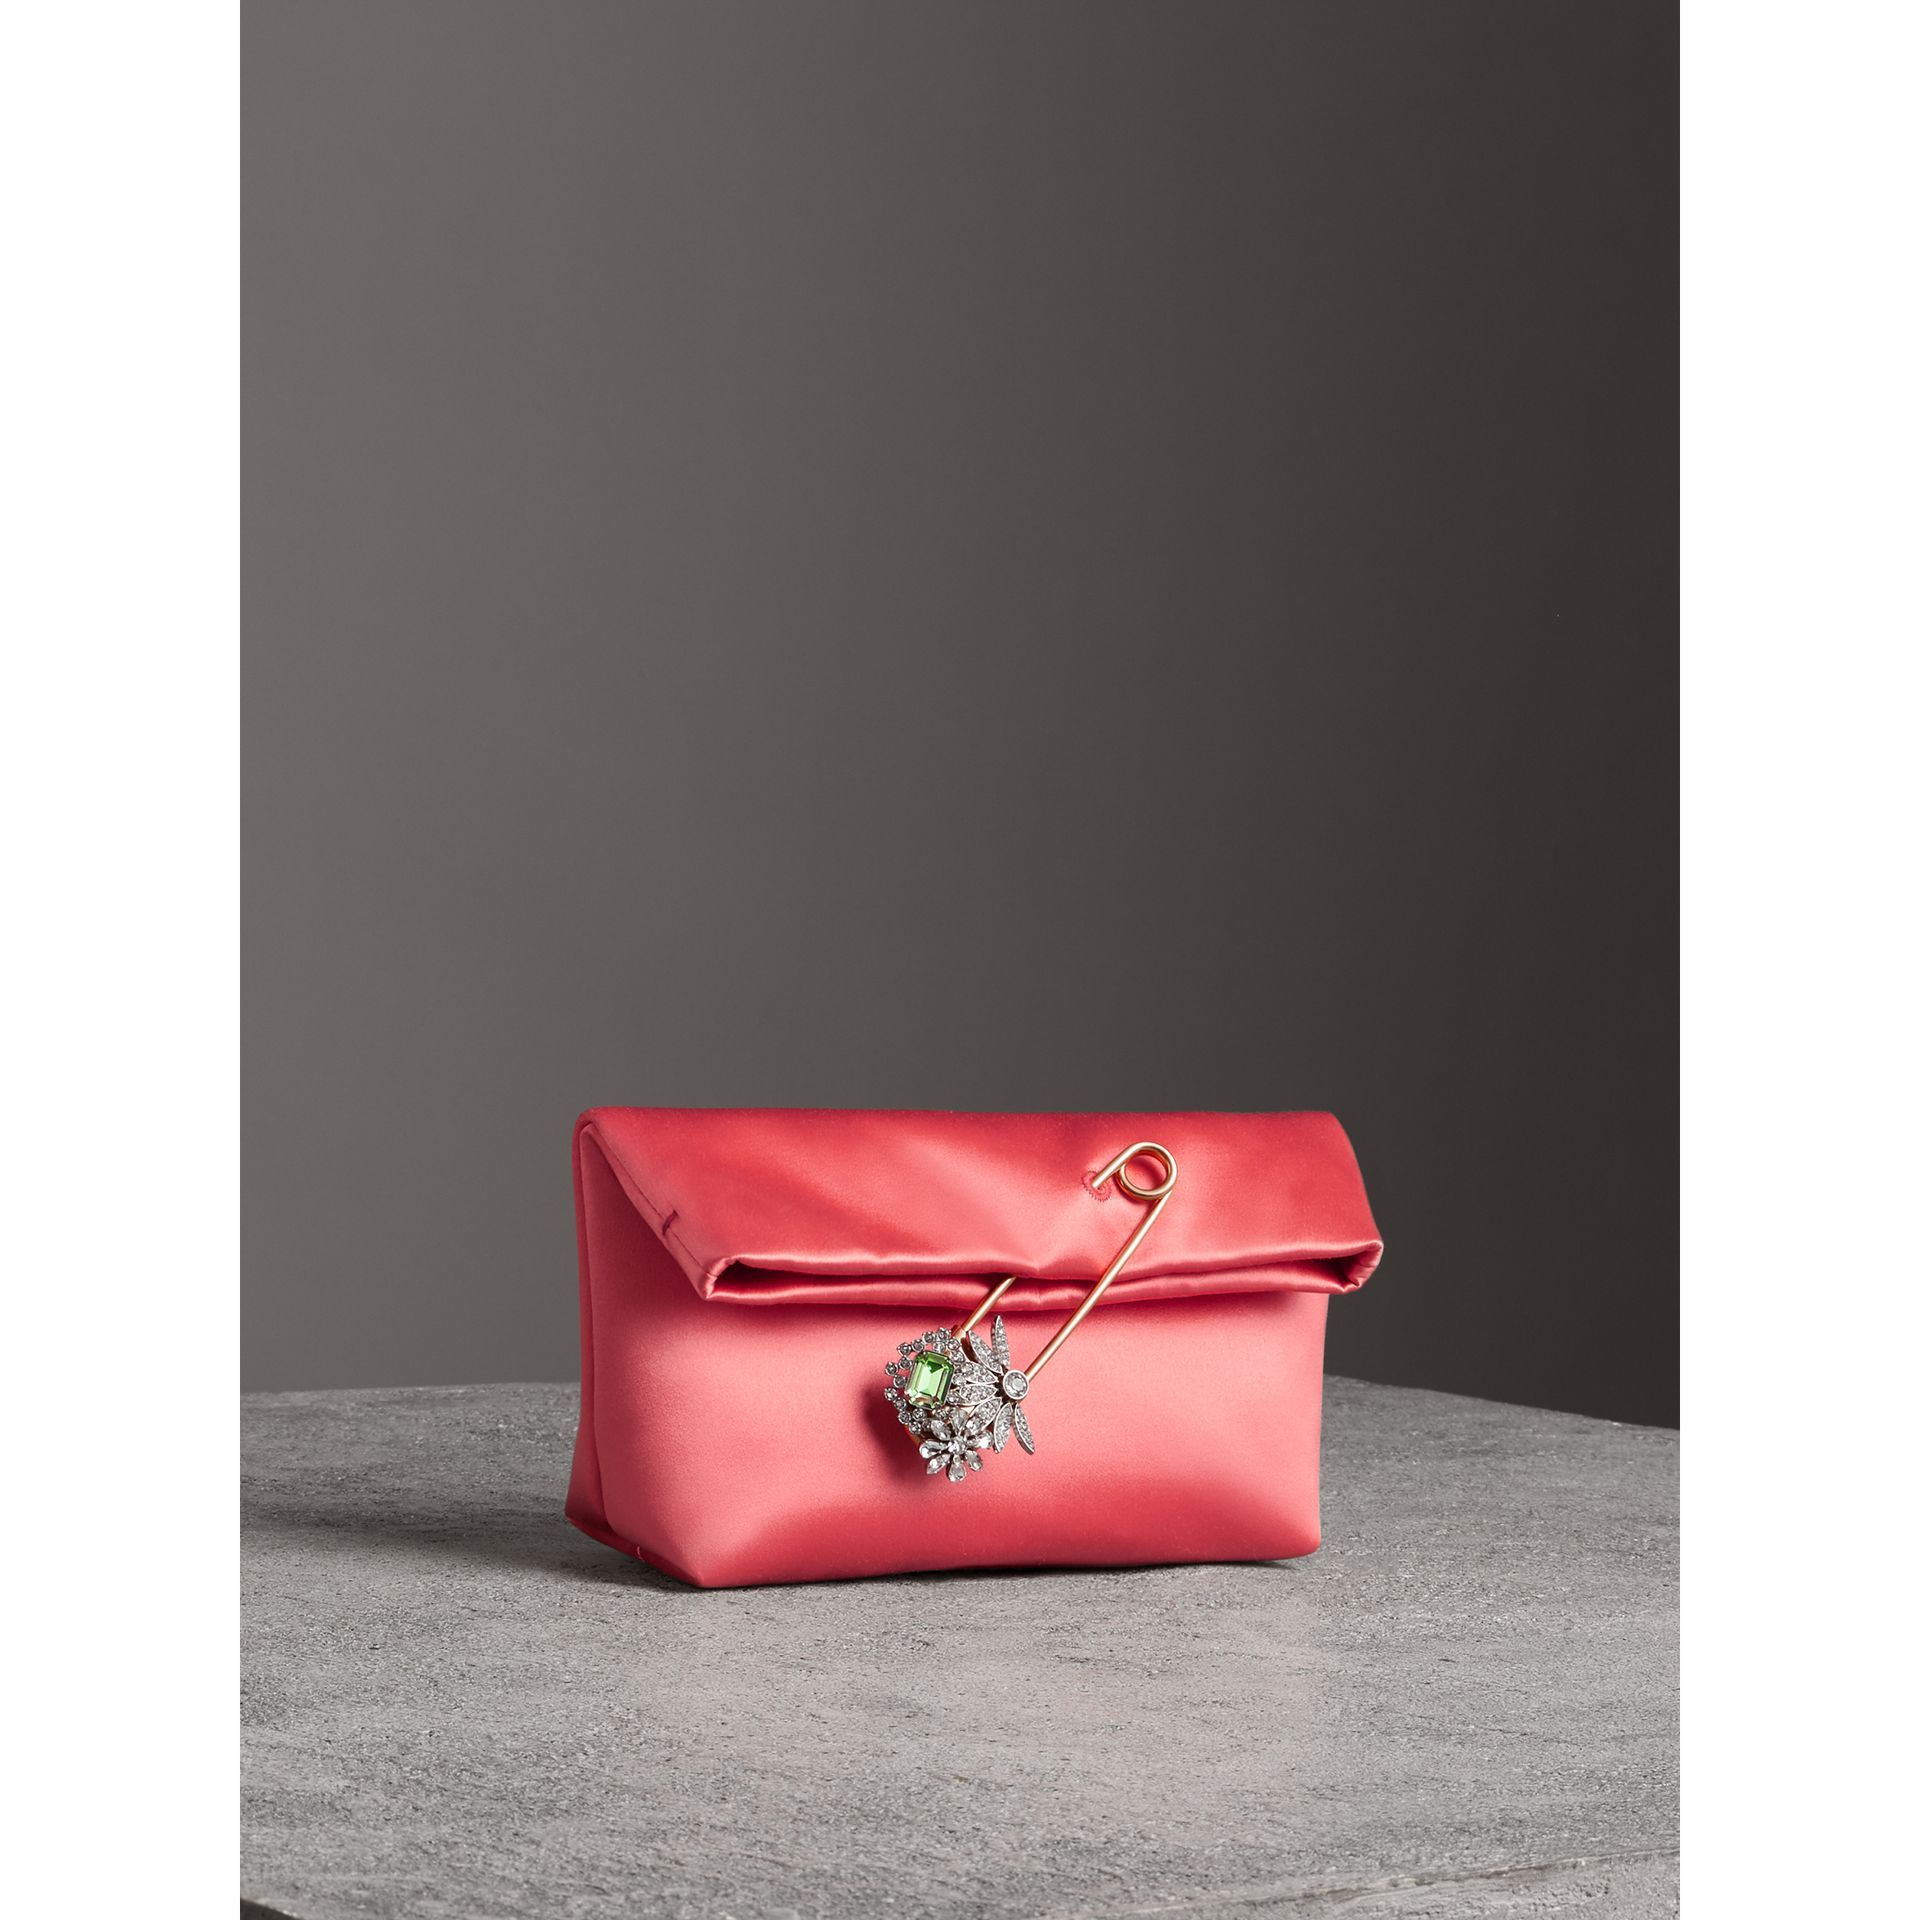 Petit clutch The Pin en satin (Cannelle Pâle) - Femme | Burberry Canada - photo de la galerie 6